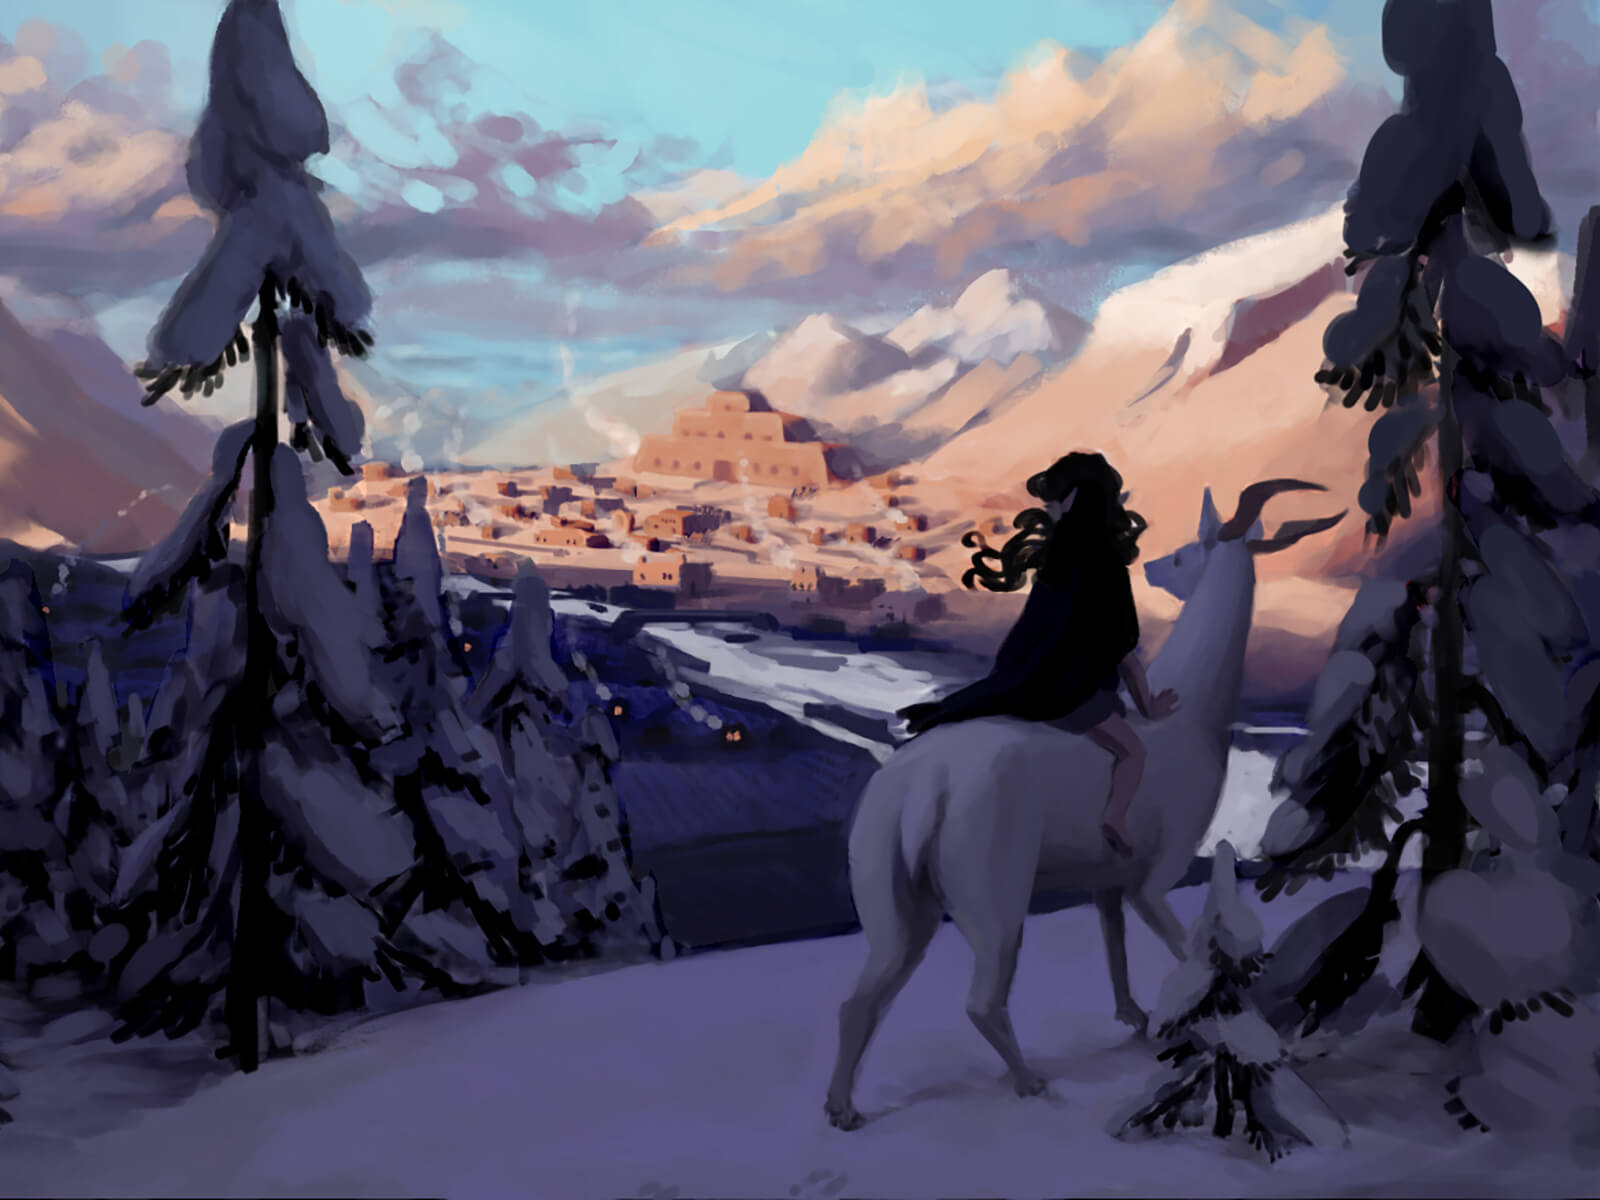 A woman rides a deer on a mountain overlooking a town